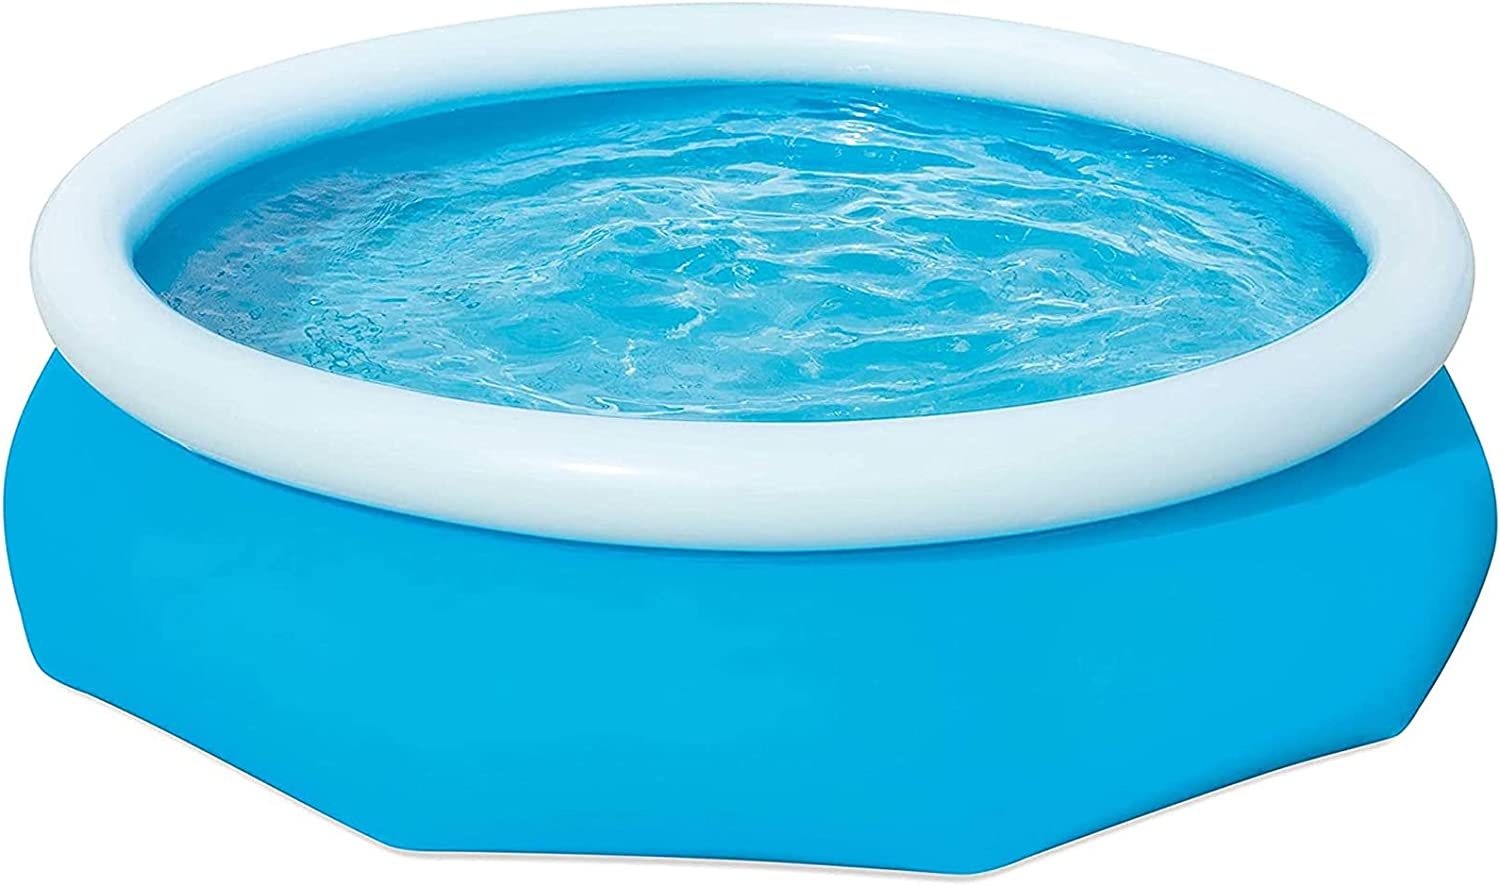 DPPAN Round Swimming Pools 12ft Sale item Poo Inflatable 2021 x 30 in